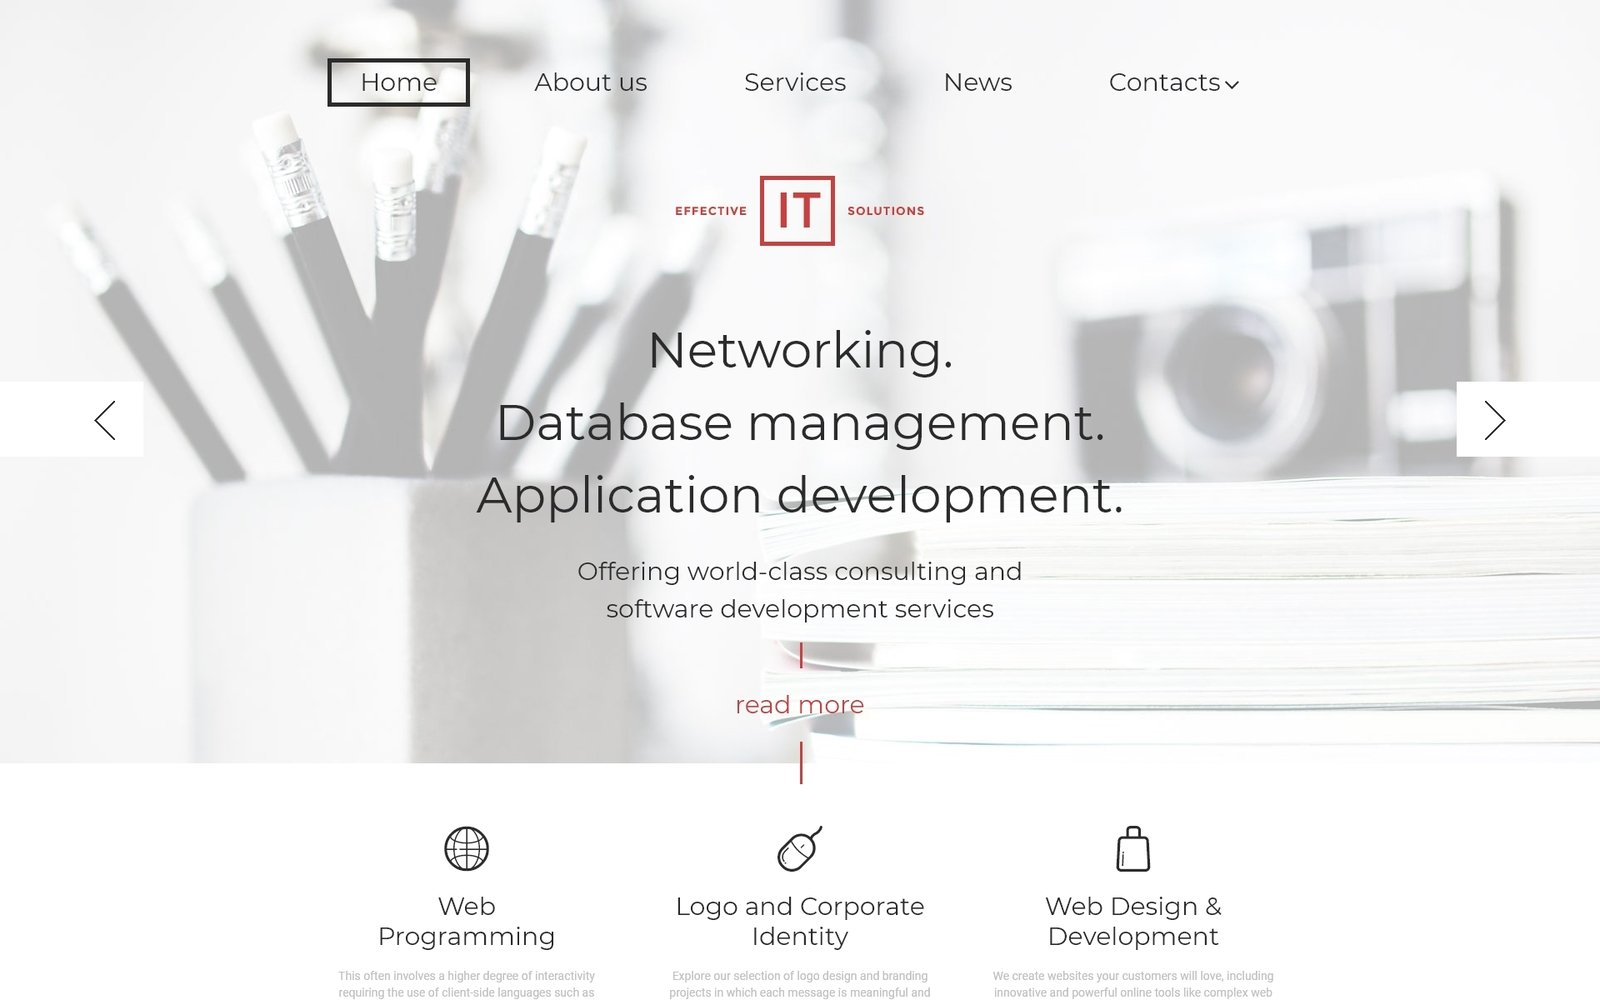 Effective IT Solutions WordPress Theme - screenshot